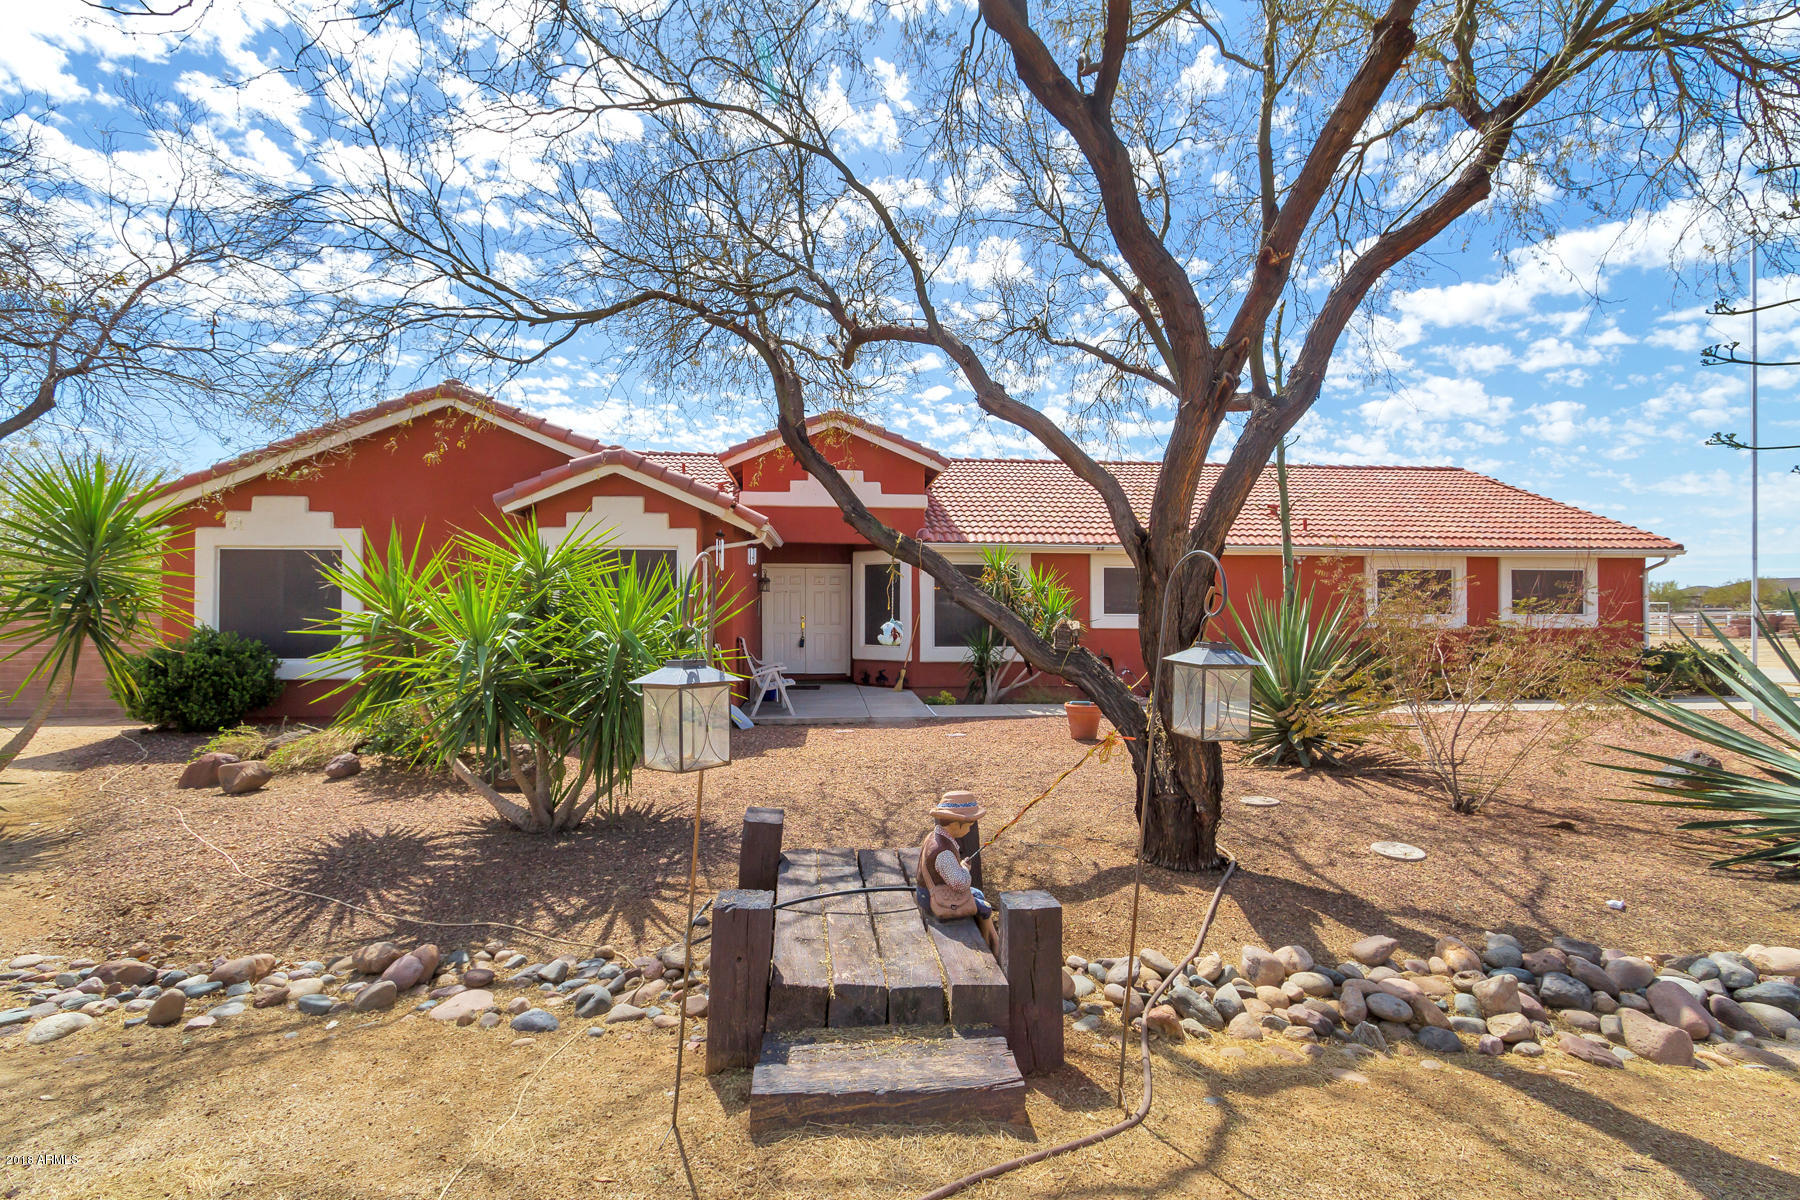 1511 W JOY RANCH Road, Anthem, Arizona